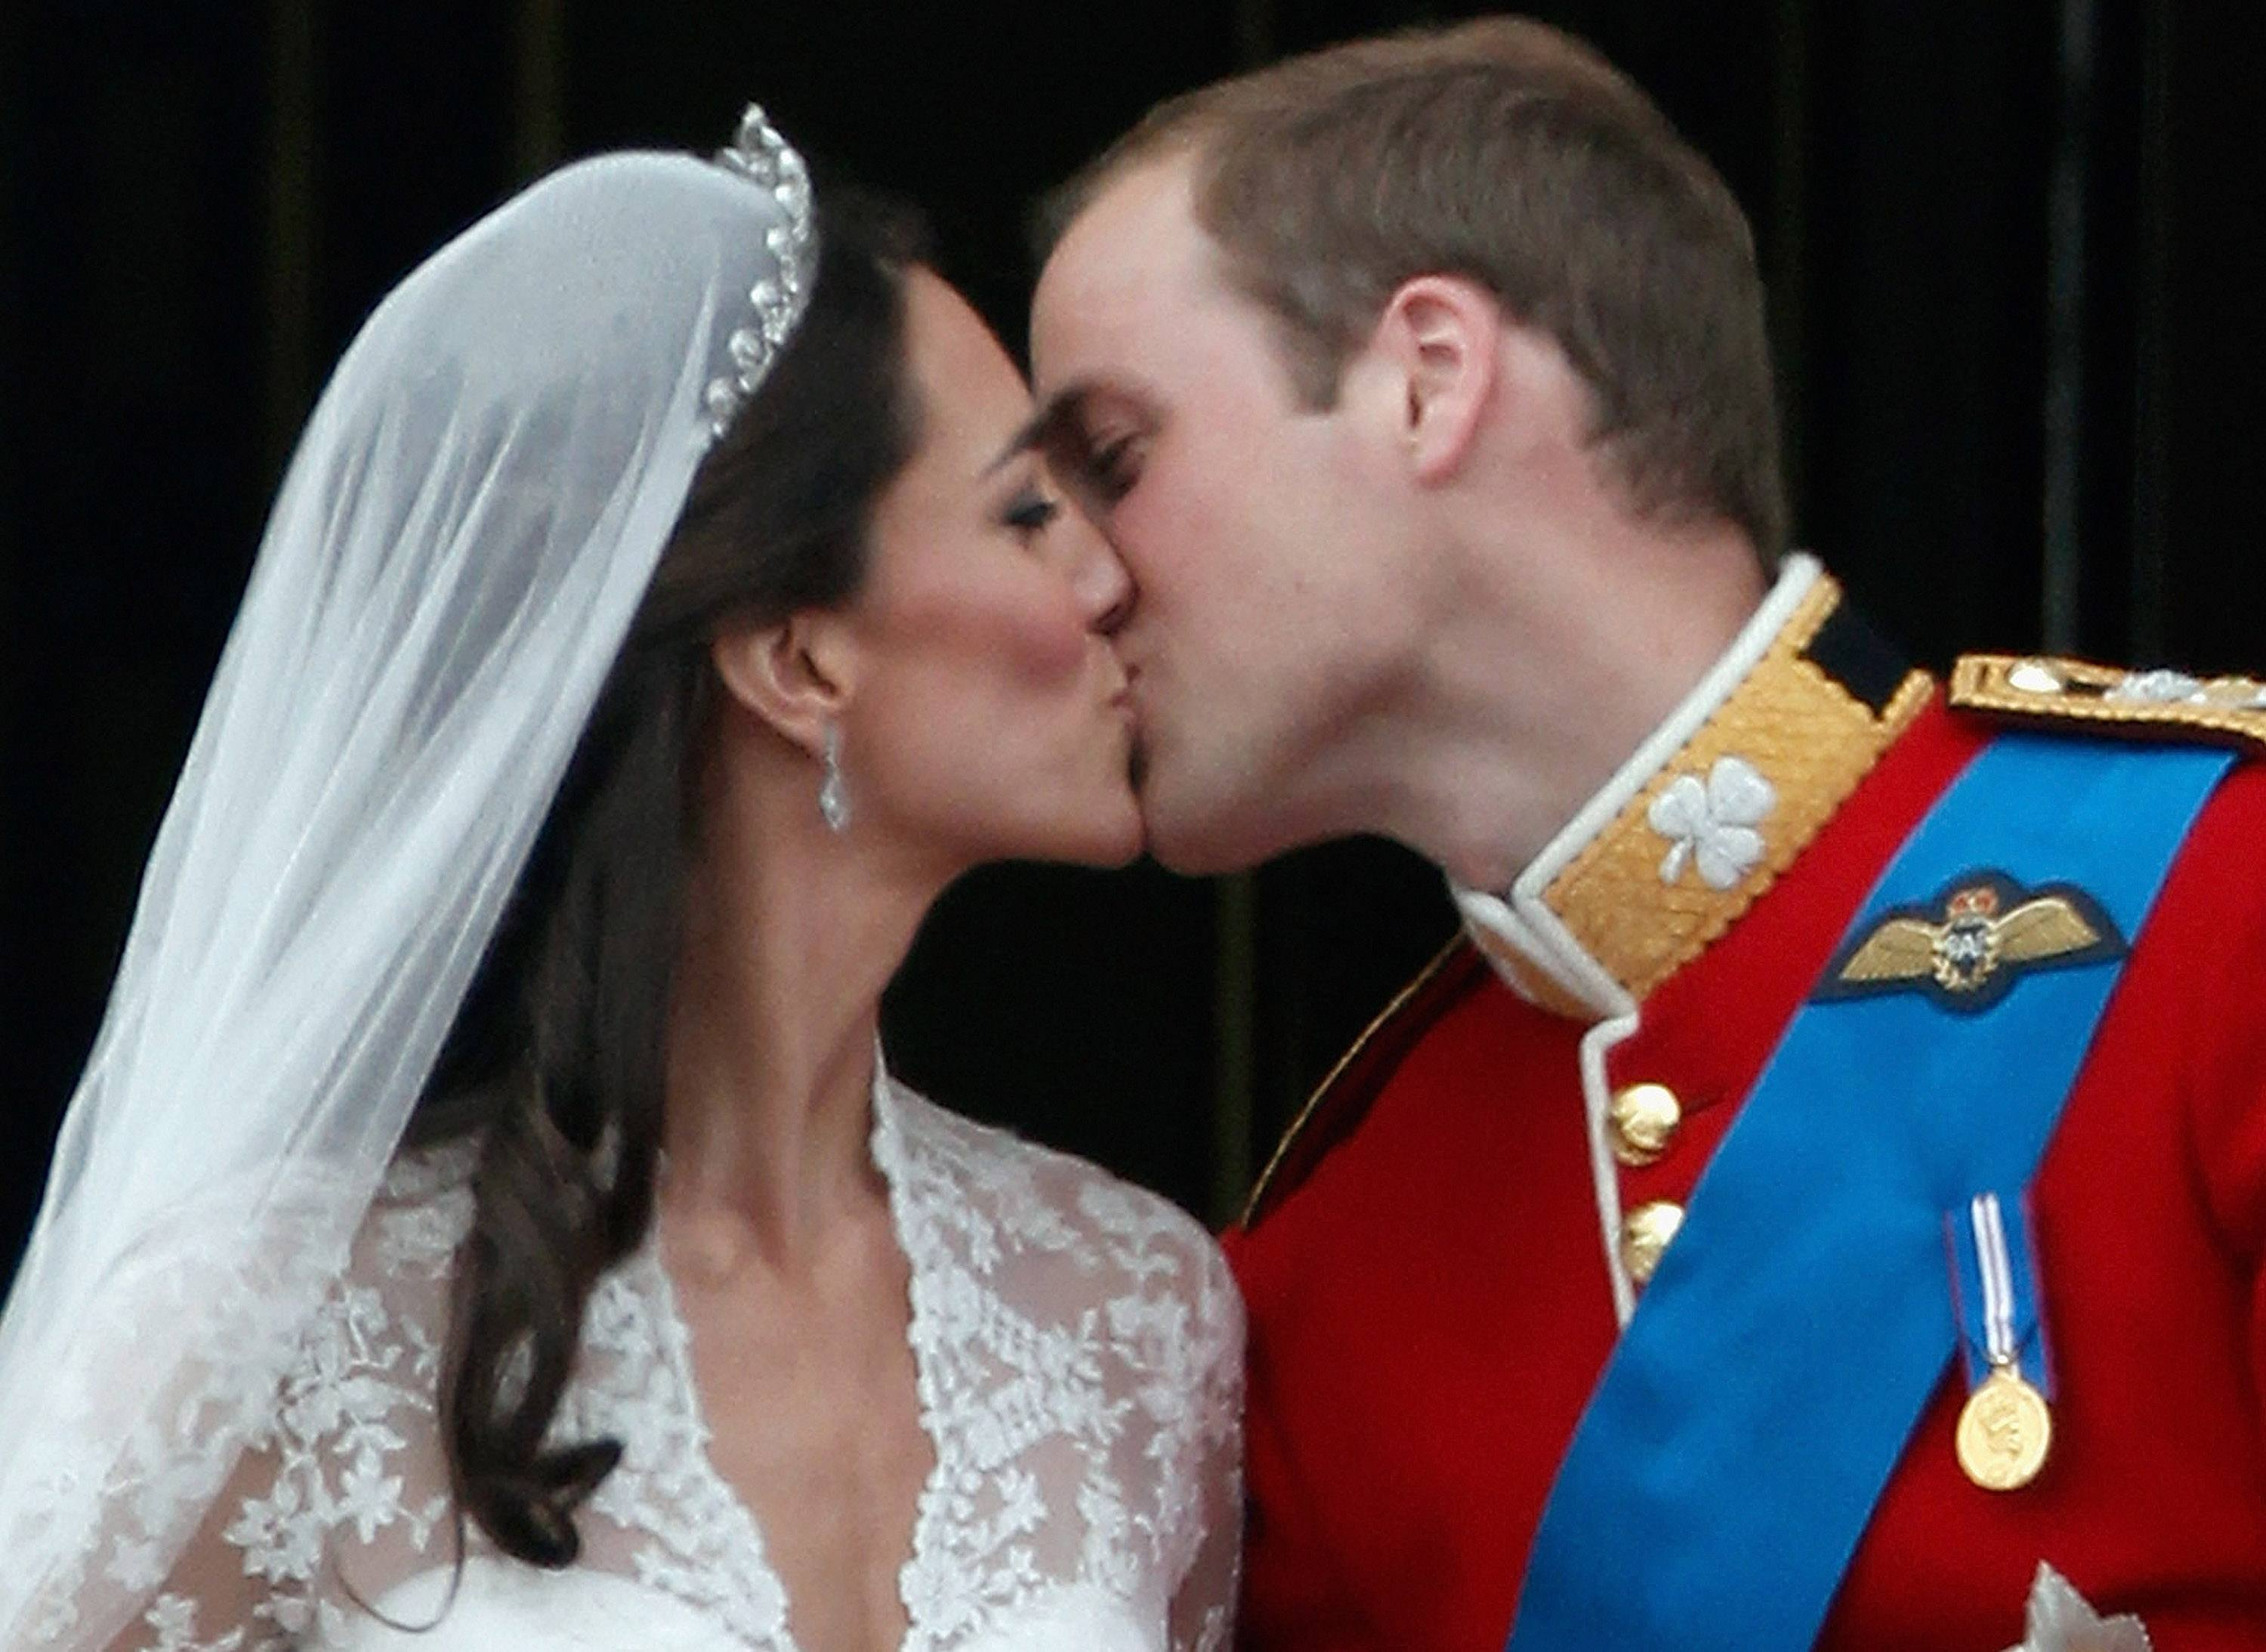 TRH Catherine, Duchess of Cambridge and Prince William, Duke of Cambridge kiss on the balcony at Buckingham Palace on April 29, 2011 in London, England.